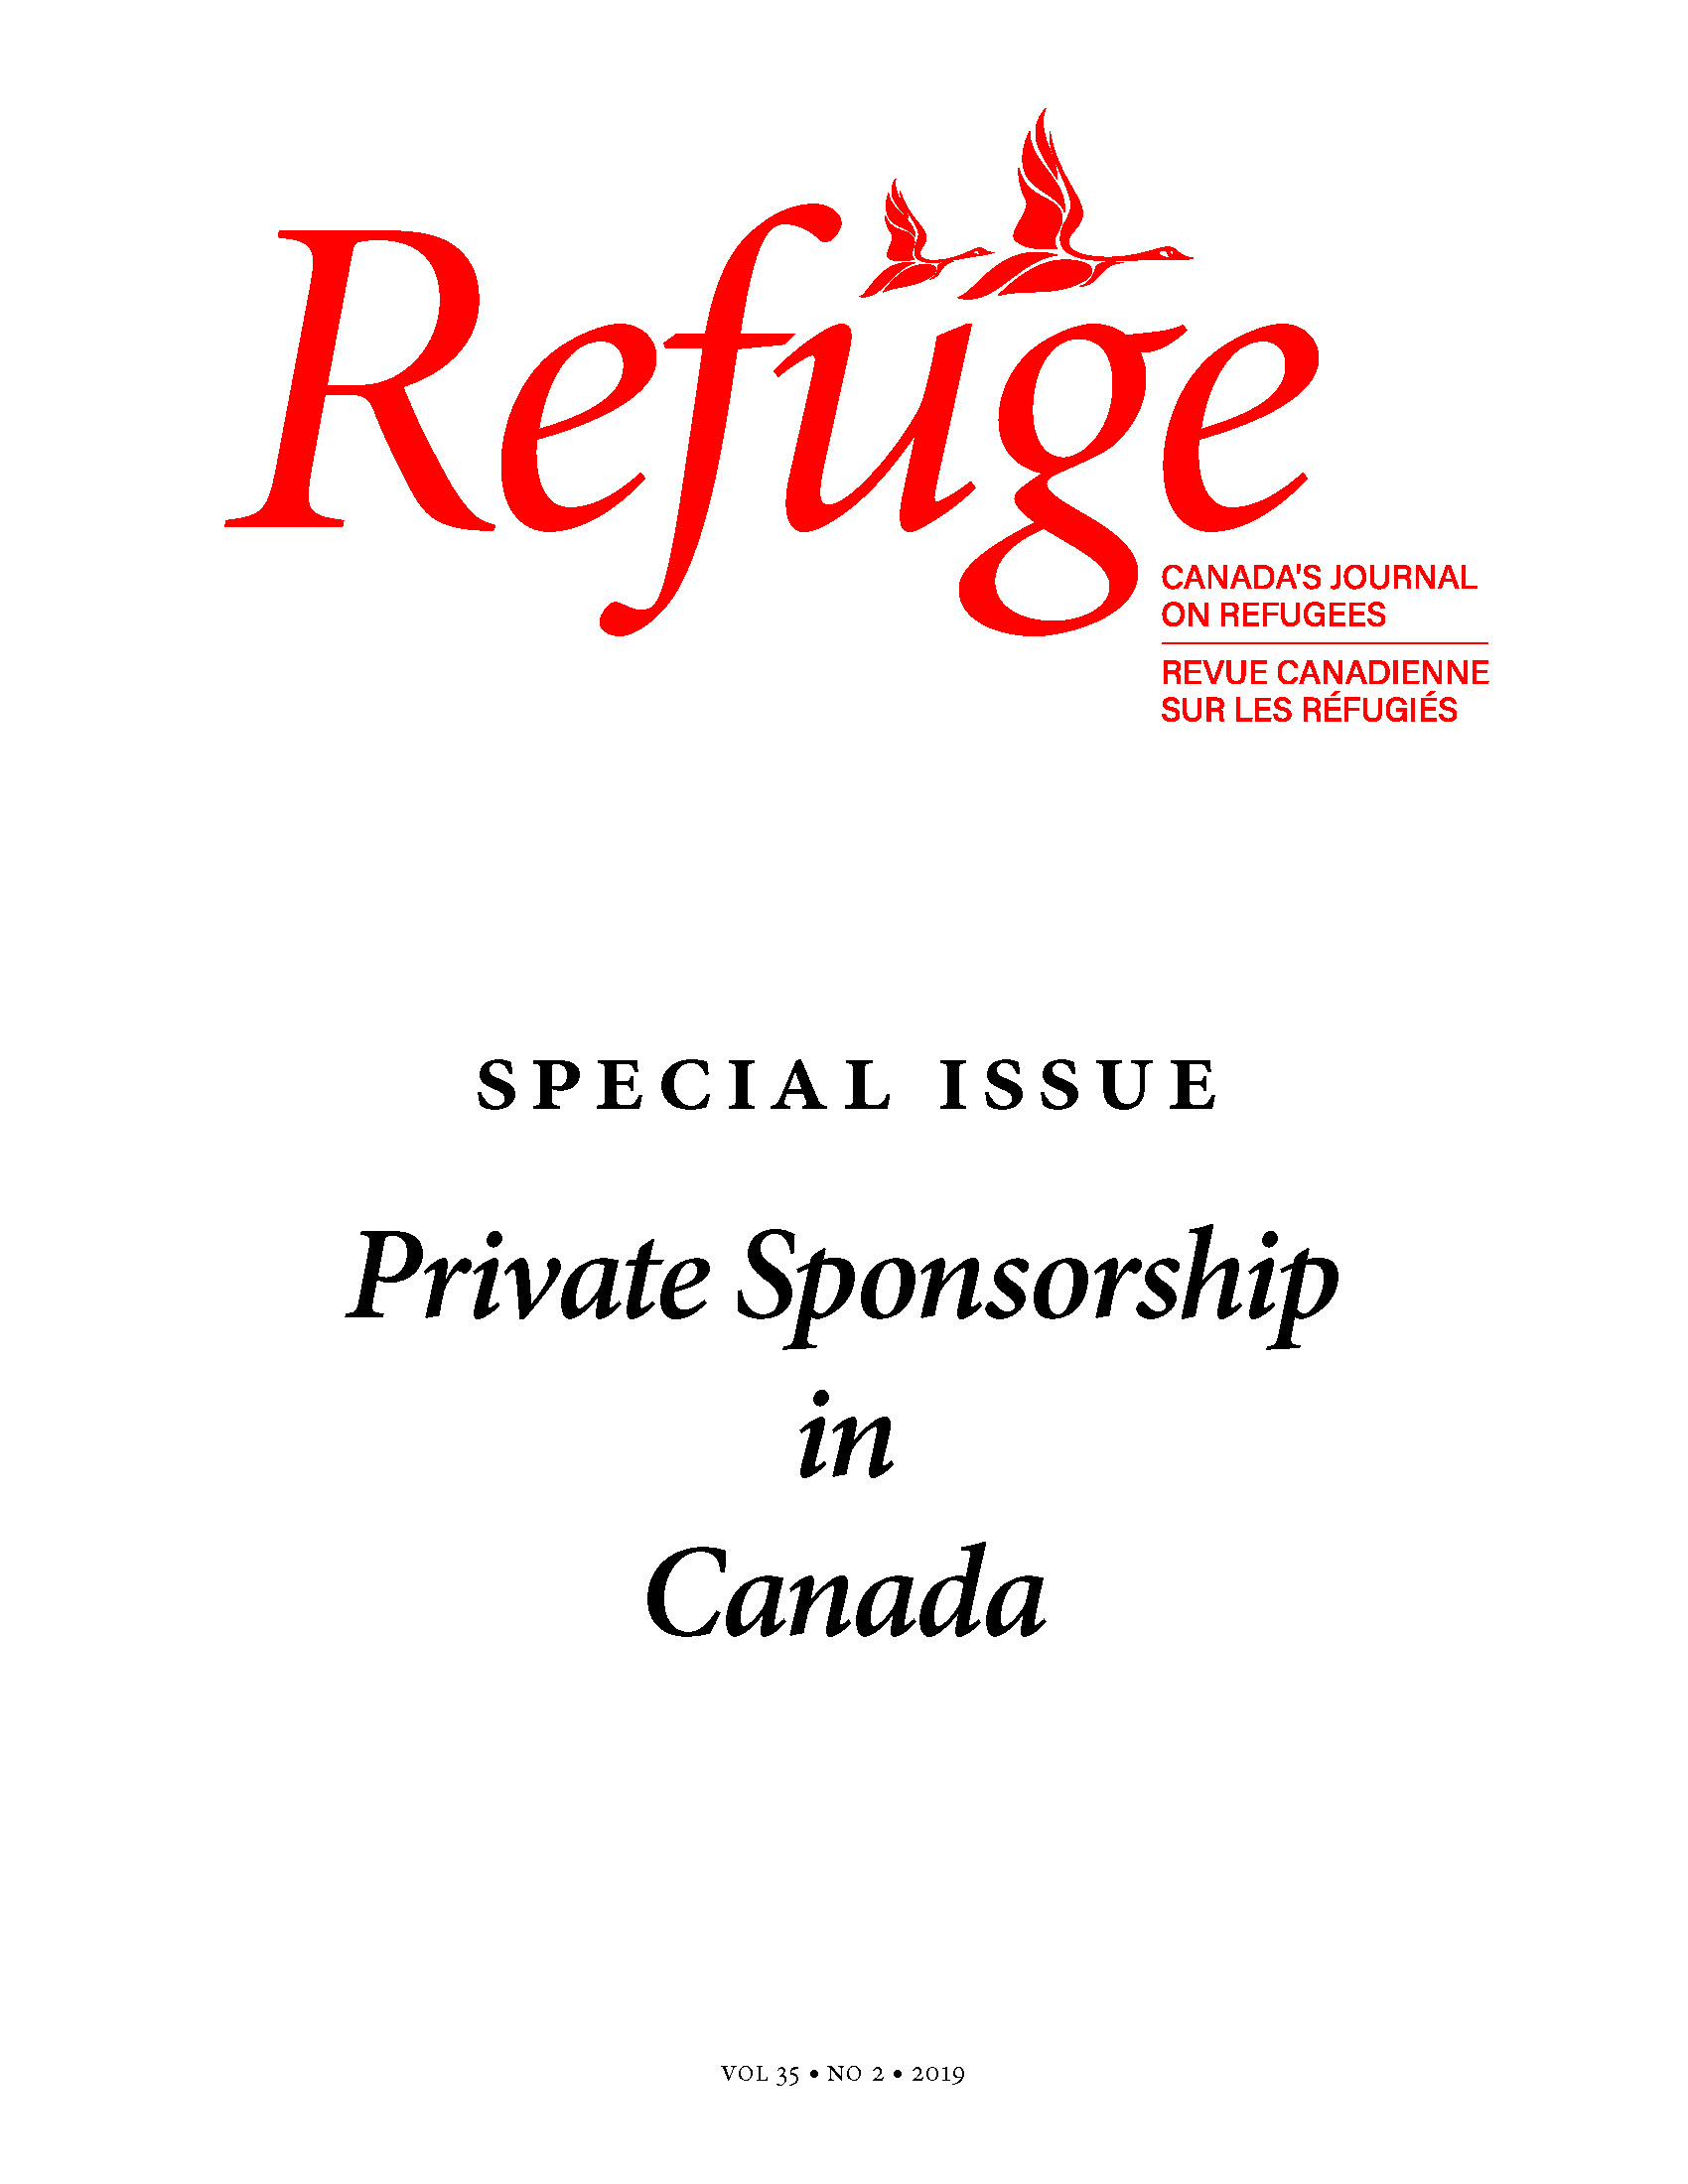 cover image of Refuge special issue on private sponsorship